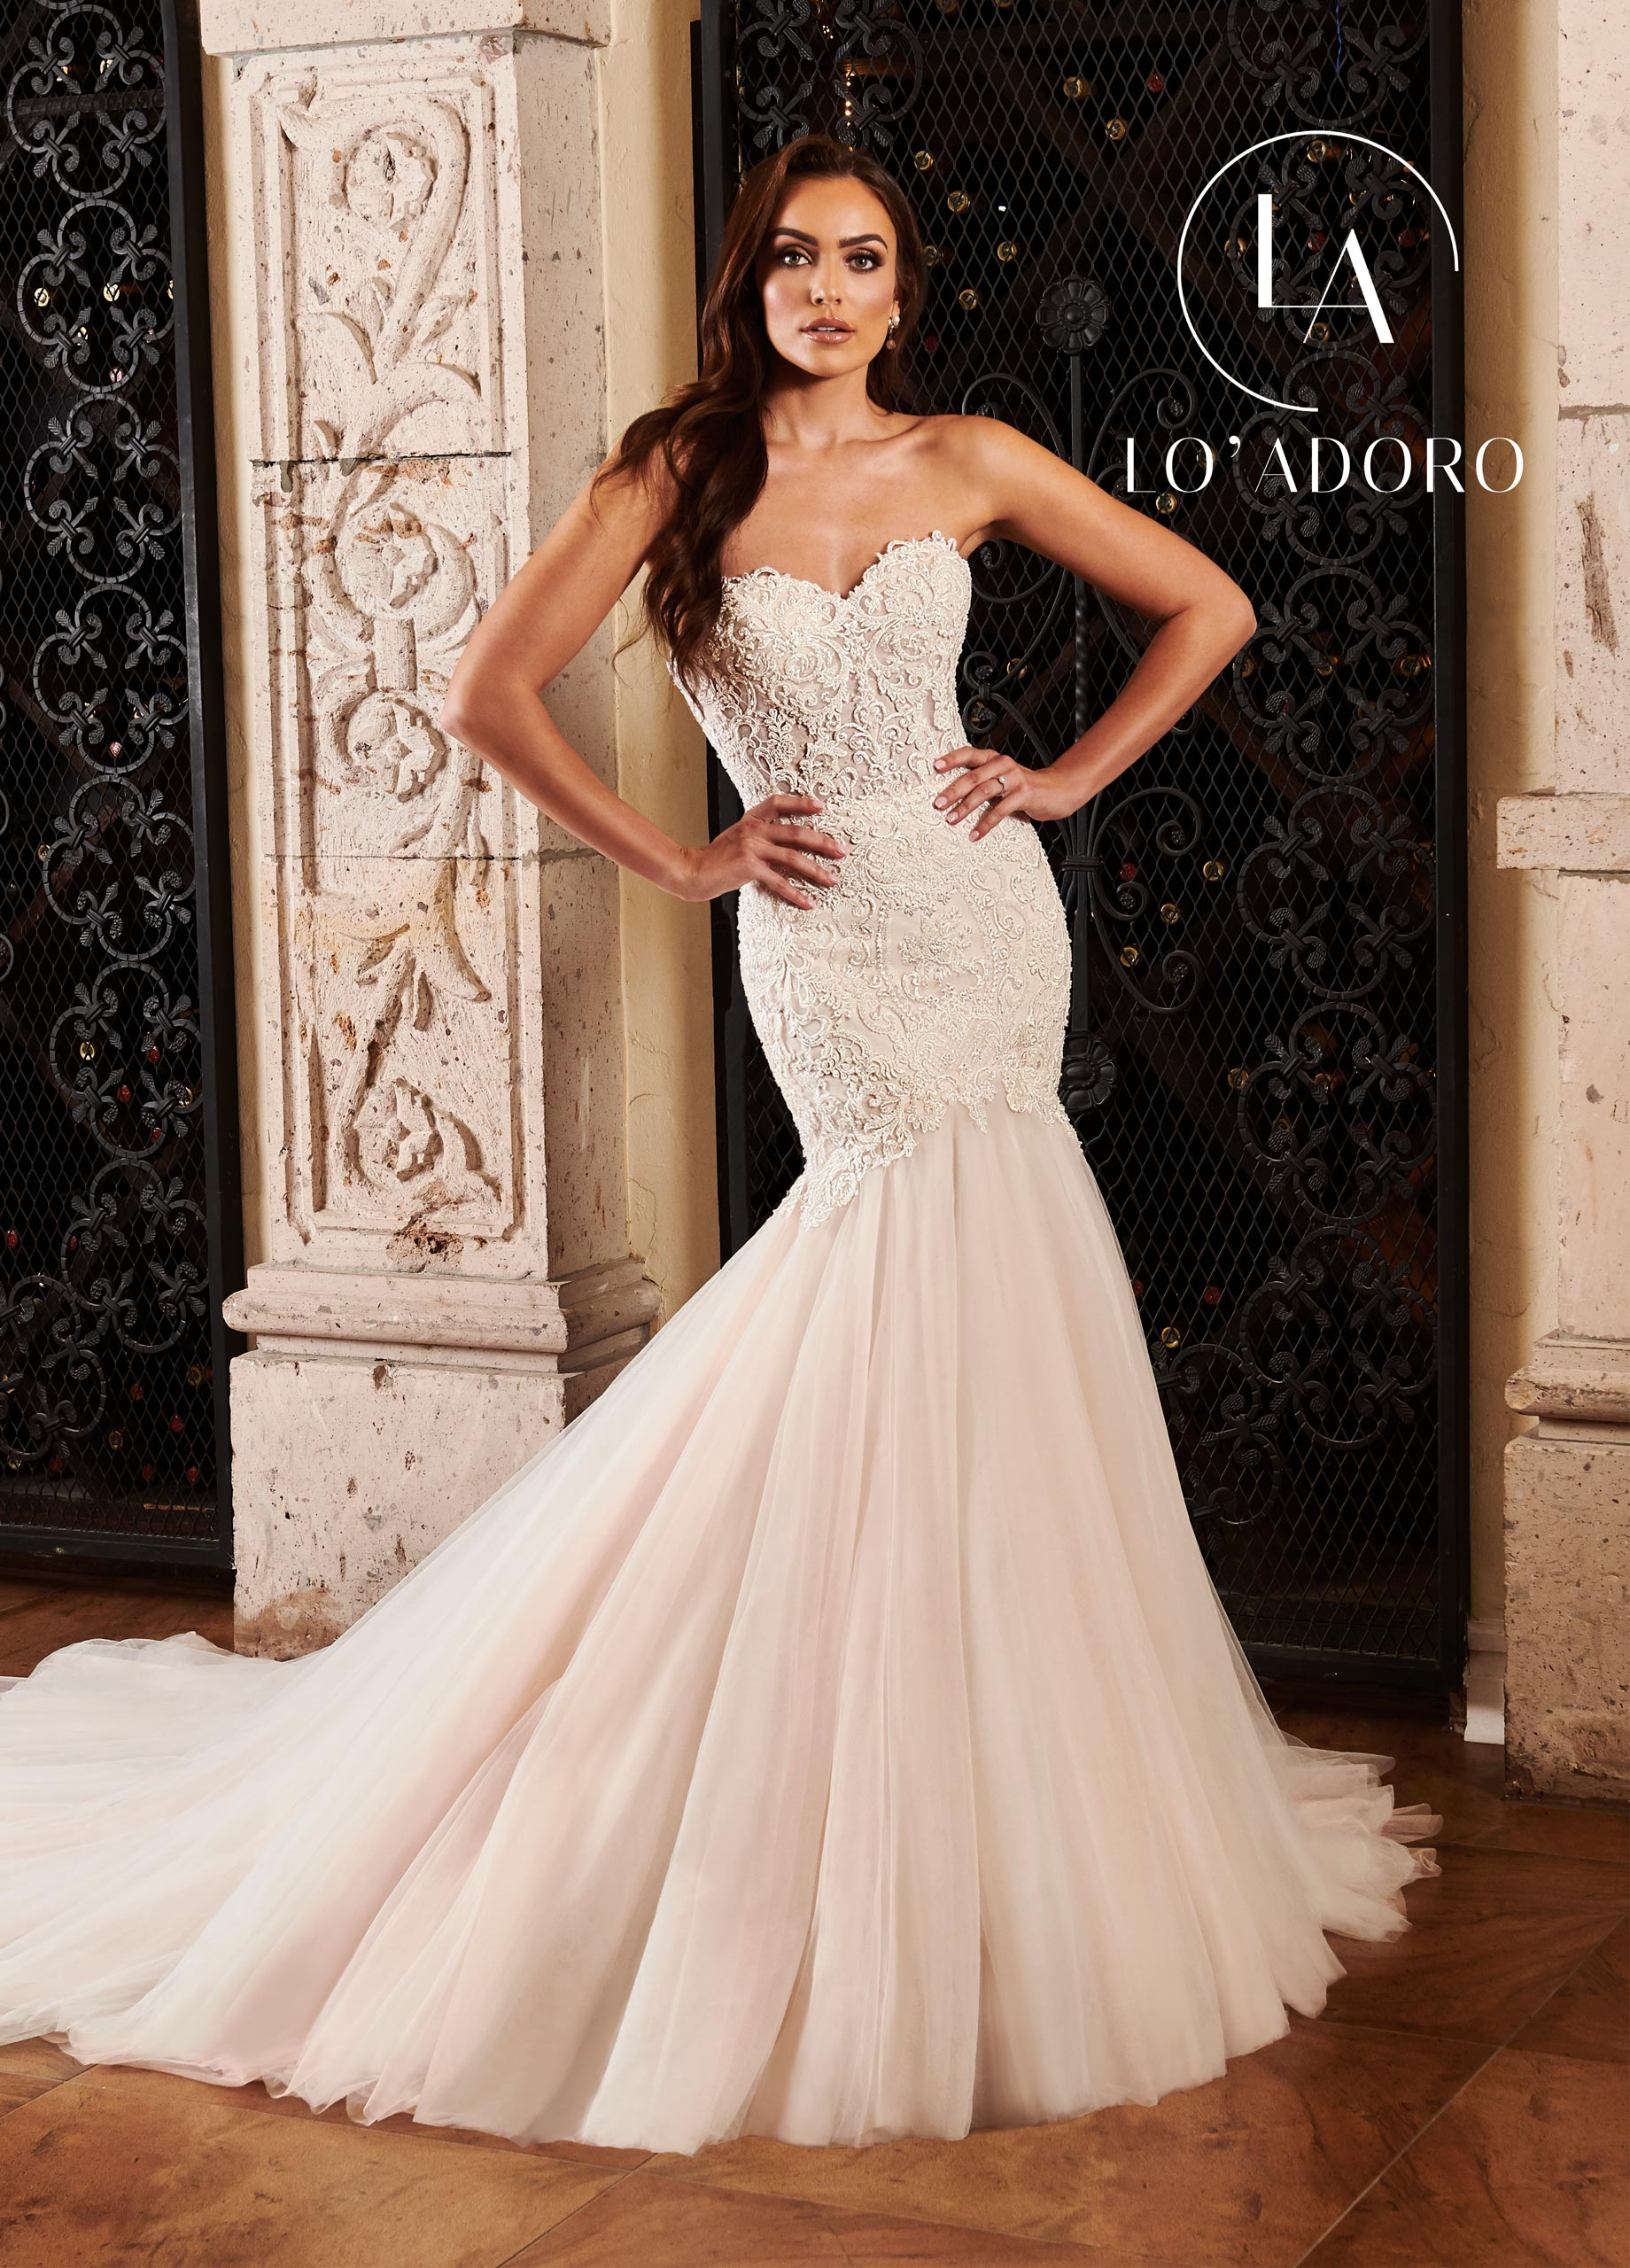 Sweetheart Mermaid Lo' Adoro Bridal in White Color